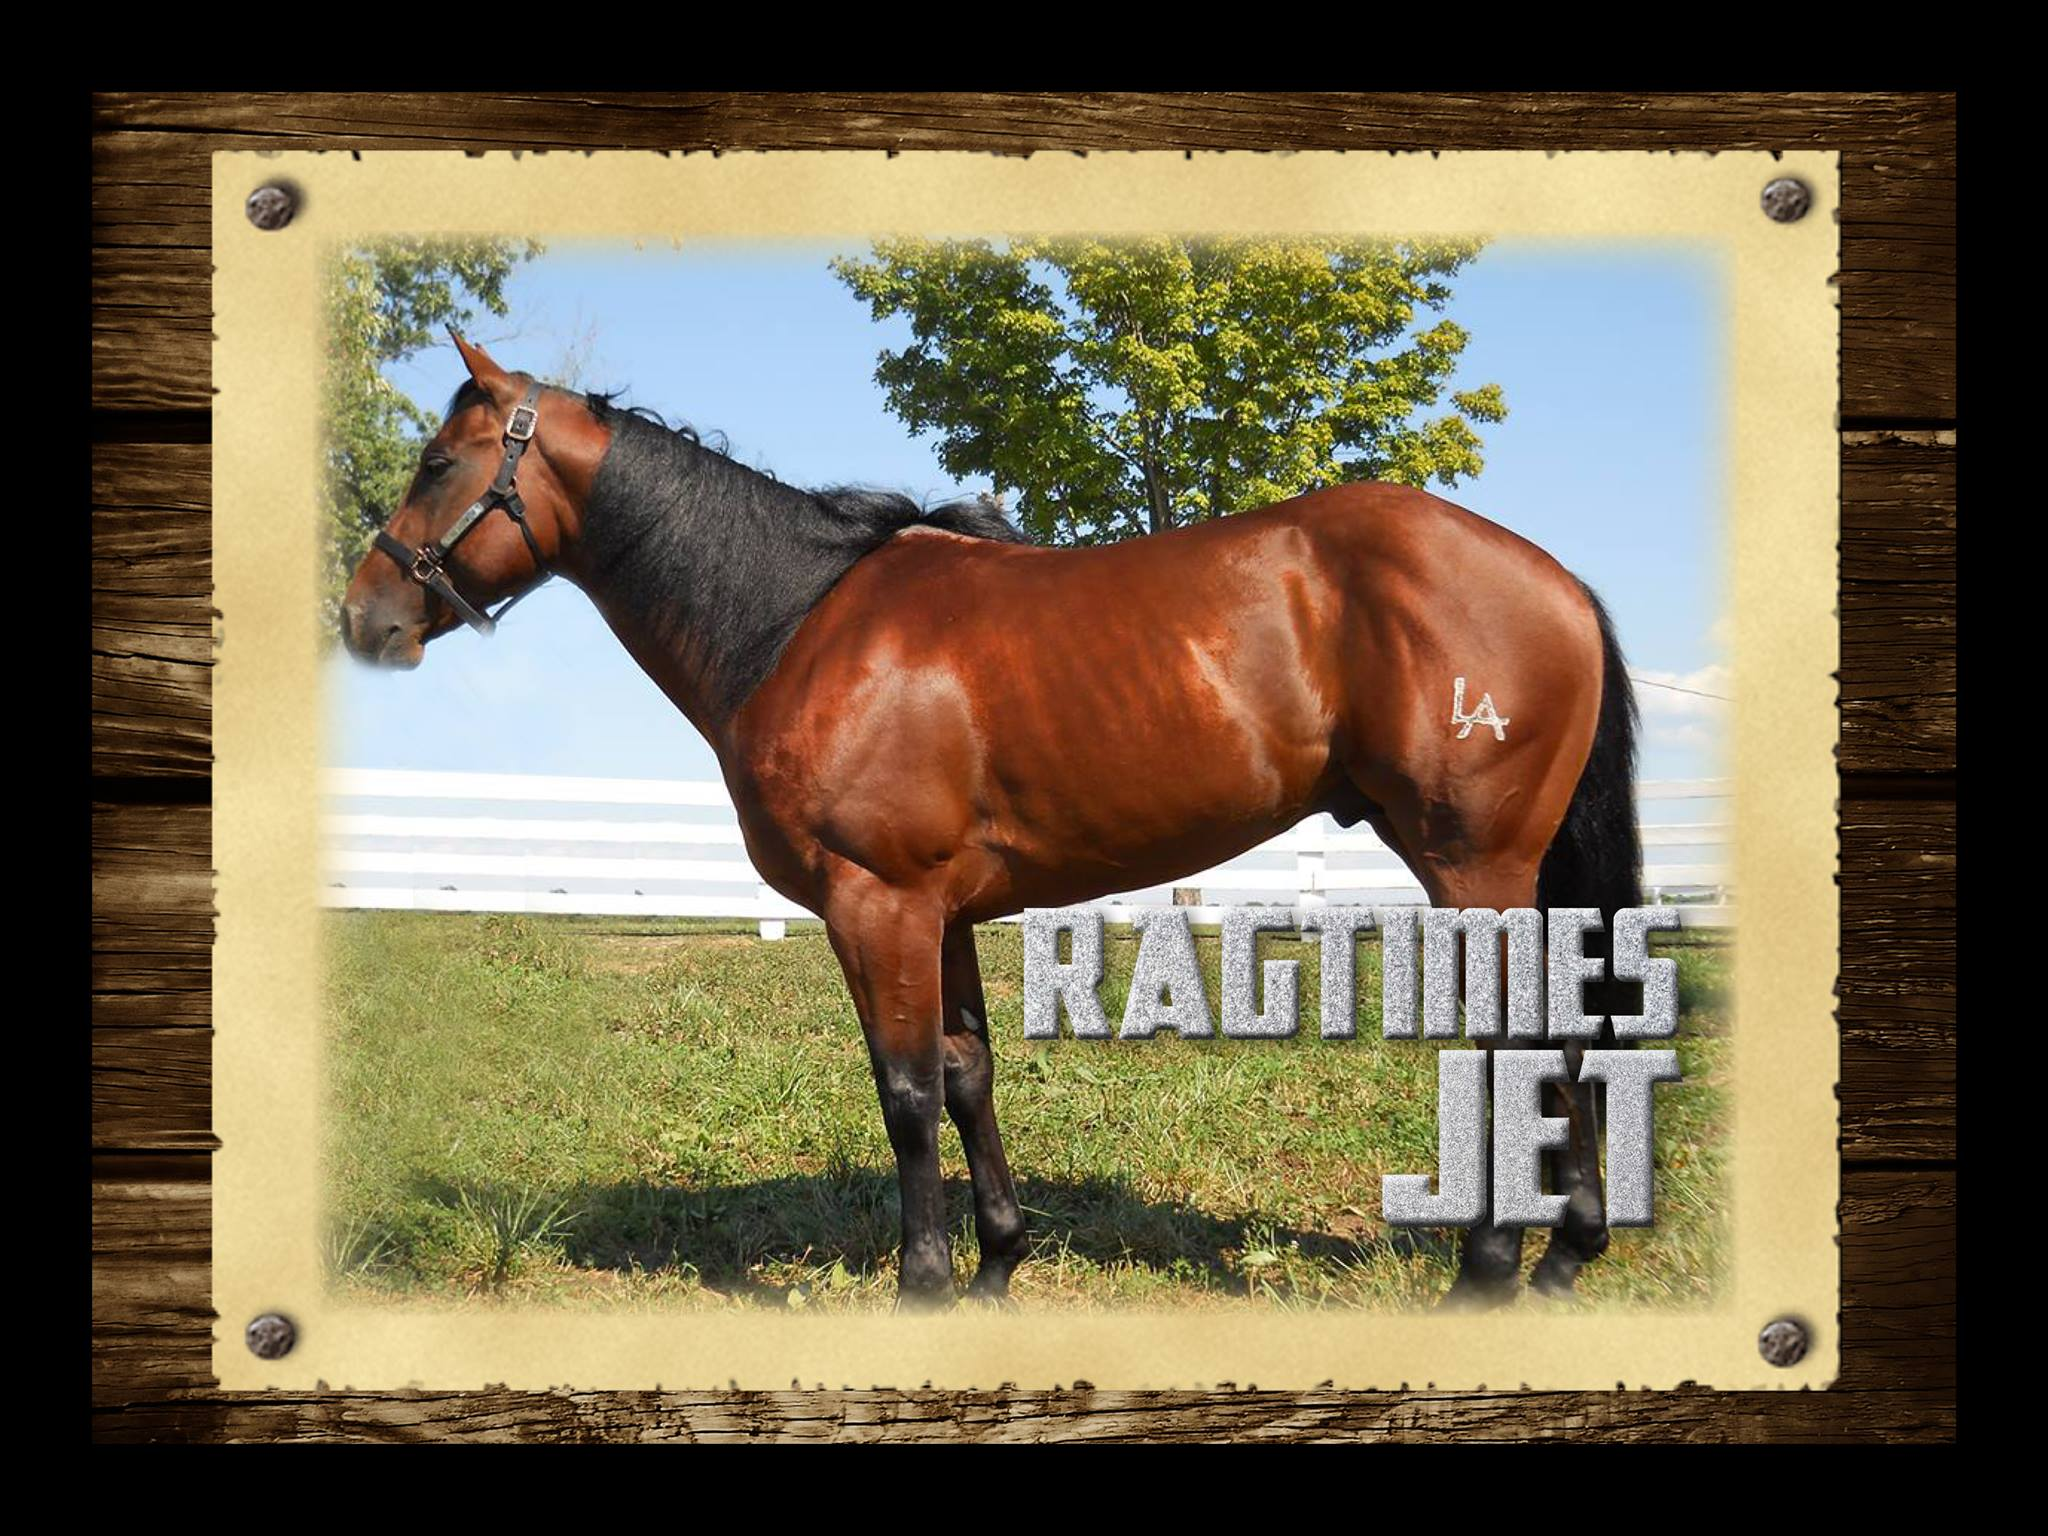 Ragtimes-Jet-Stallions Page photo by Chuck-Givens